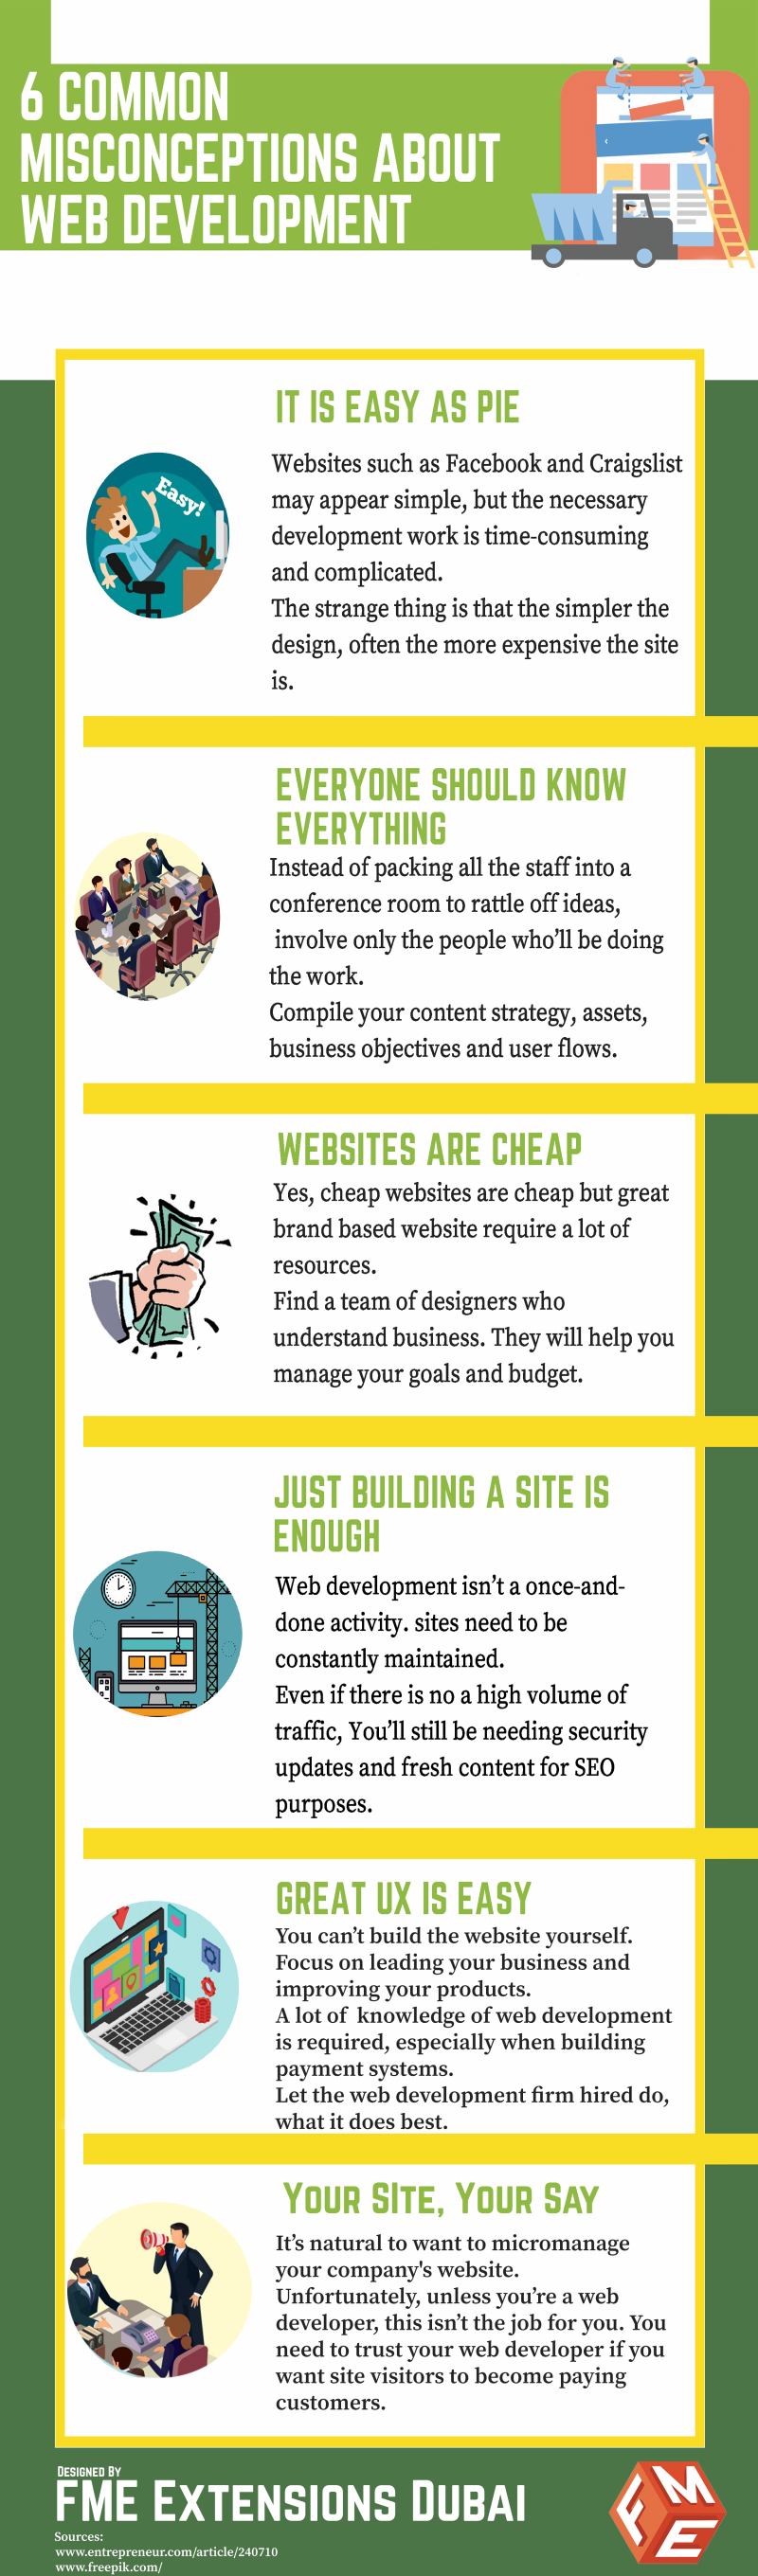 6 Common Misconceptions About Web Development [Infographic